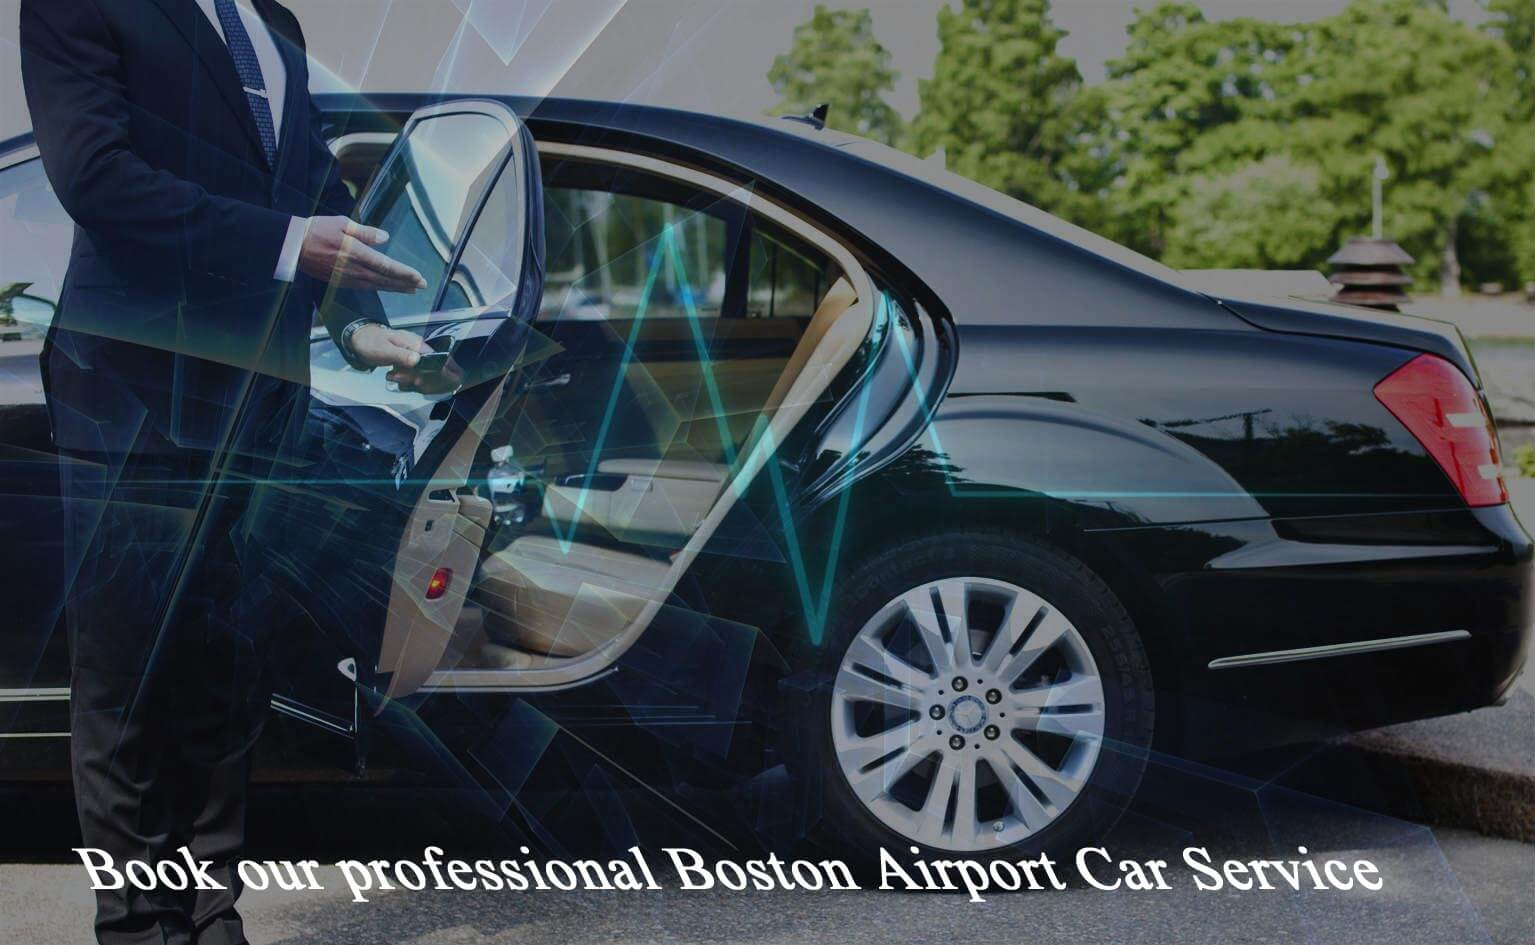 Boston-Airport-Car-Service Book our professional Boston Airport Car Service